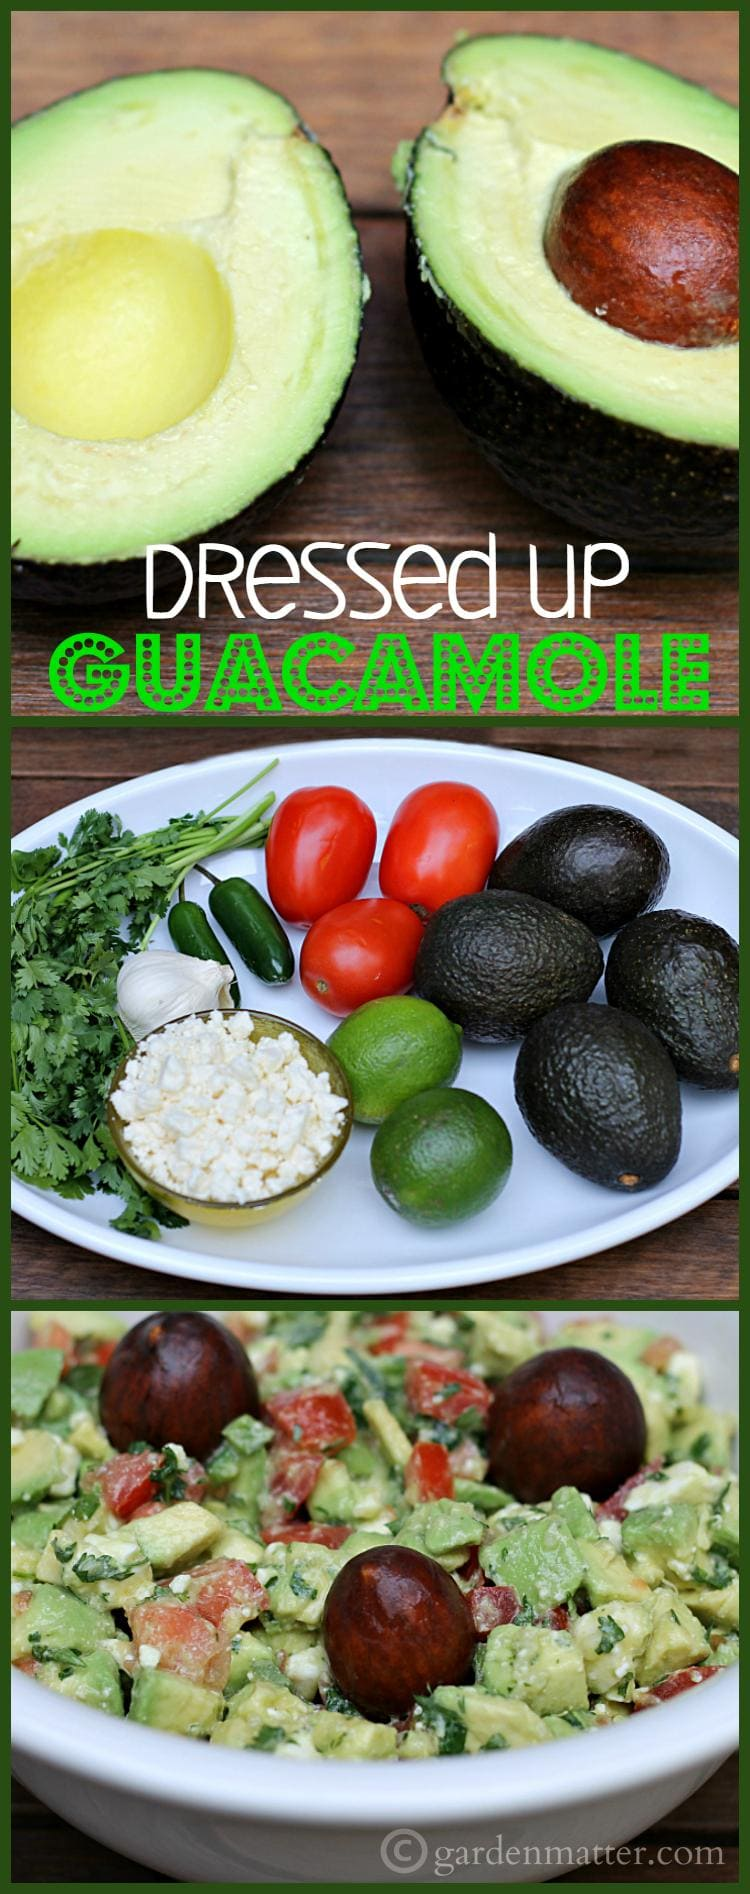 "Here's a recipe for guacamole that is ""dressed-up"" with feta cheese and hot peppers. Great for a party or a Mexican themed dinner."